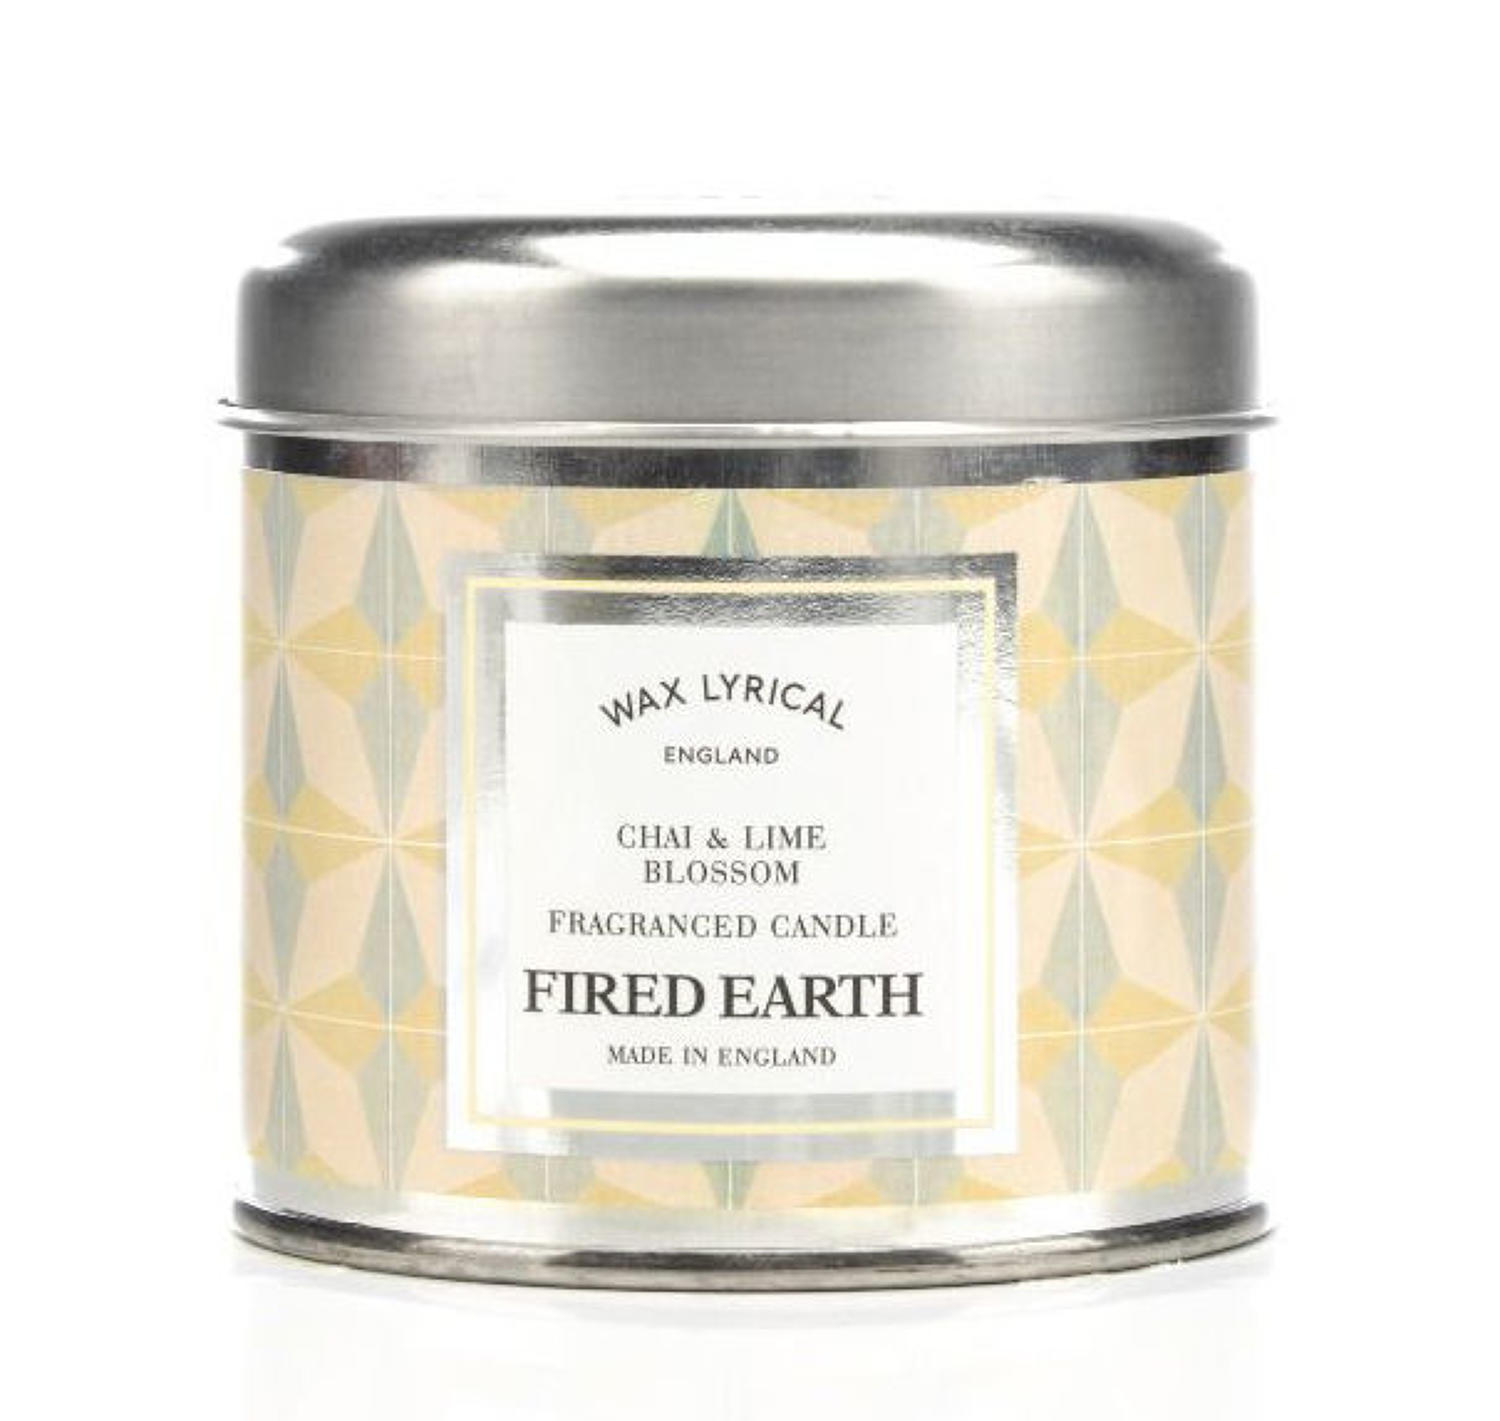 Wax Lyrical Fired Earth Chai & Lime Blossom candle tin